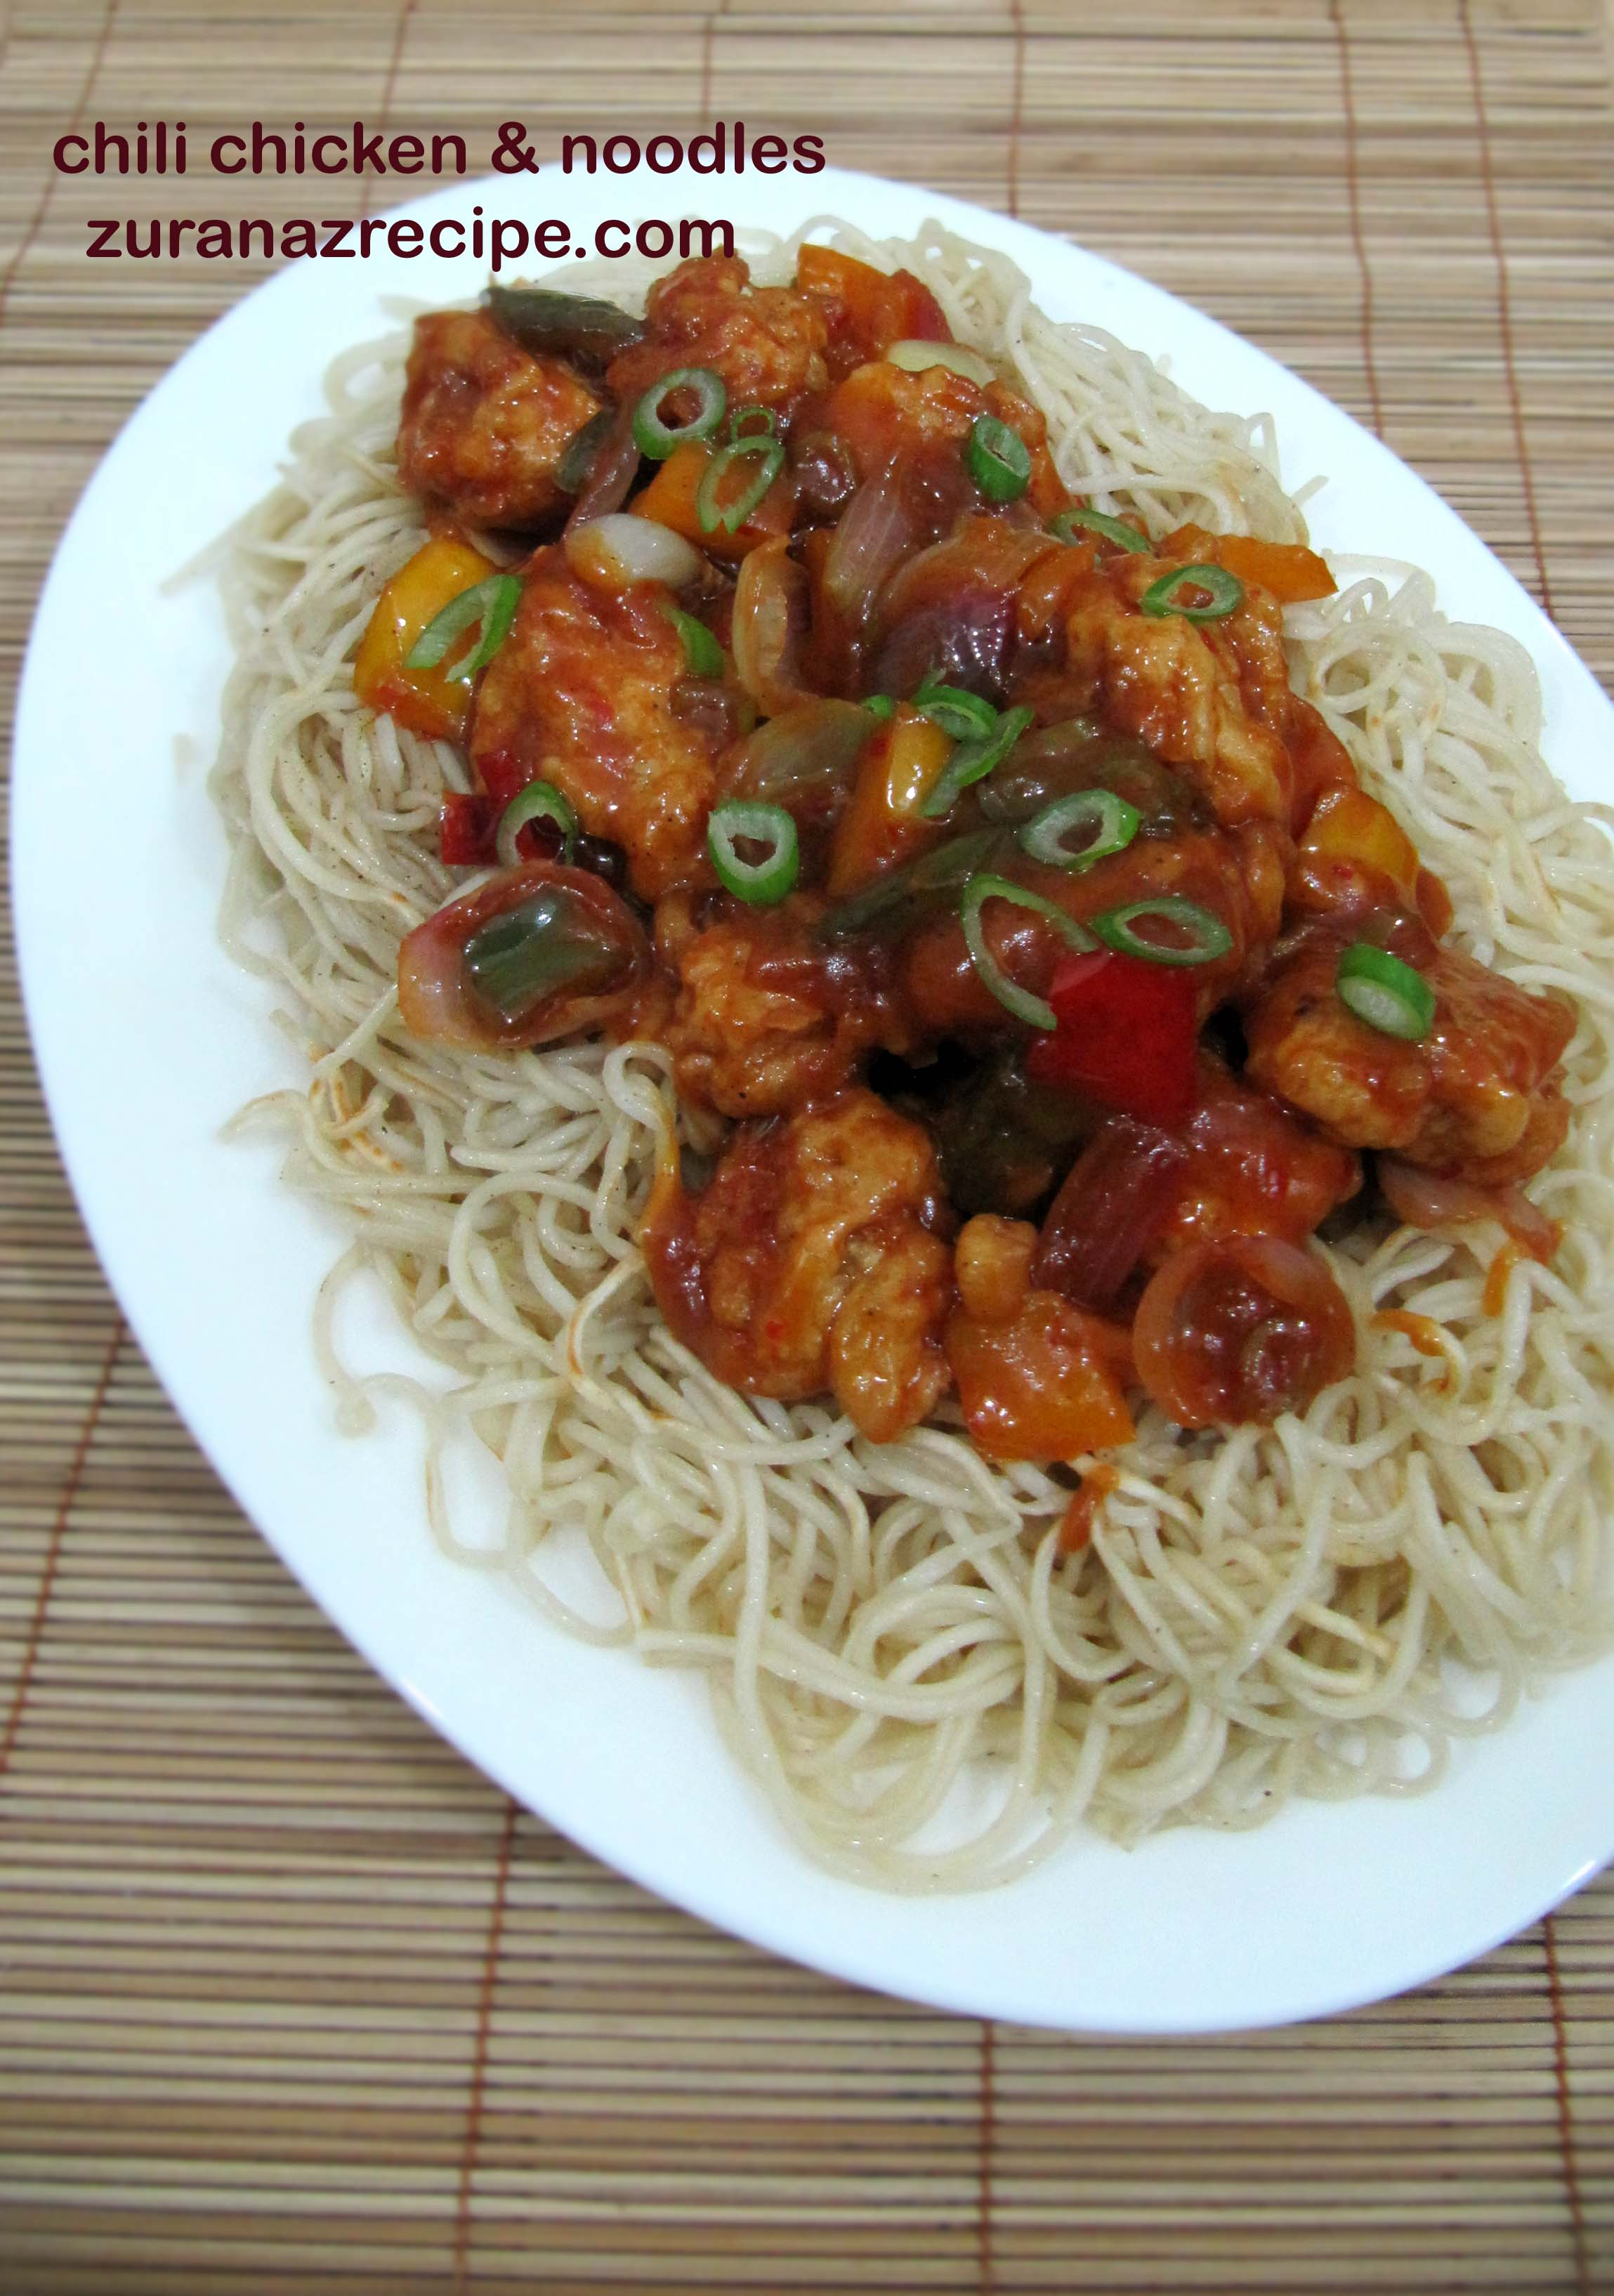 Chili chicken fried noodles chinese chili chicken noodles recipe chili chicken fried noodles chinese chili chicken noodles recipe video forumfinder Choice Image